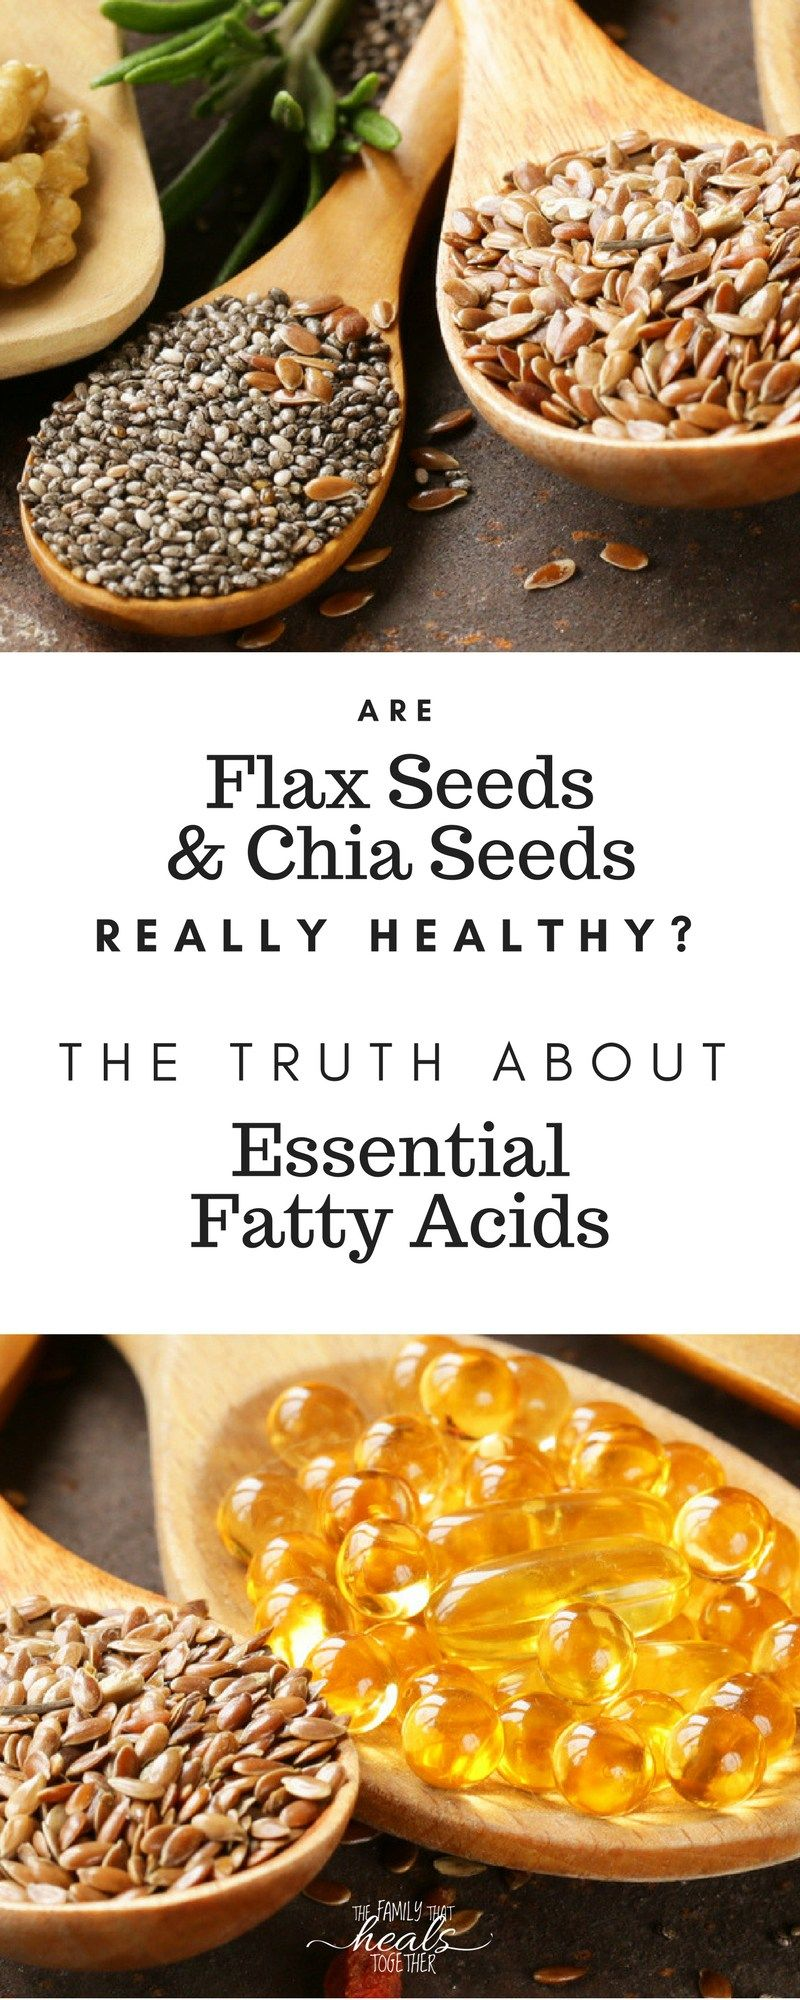 Are chia seeds and flax seeds really healthy the truth